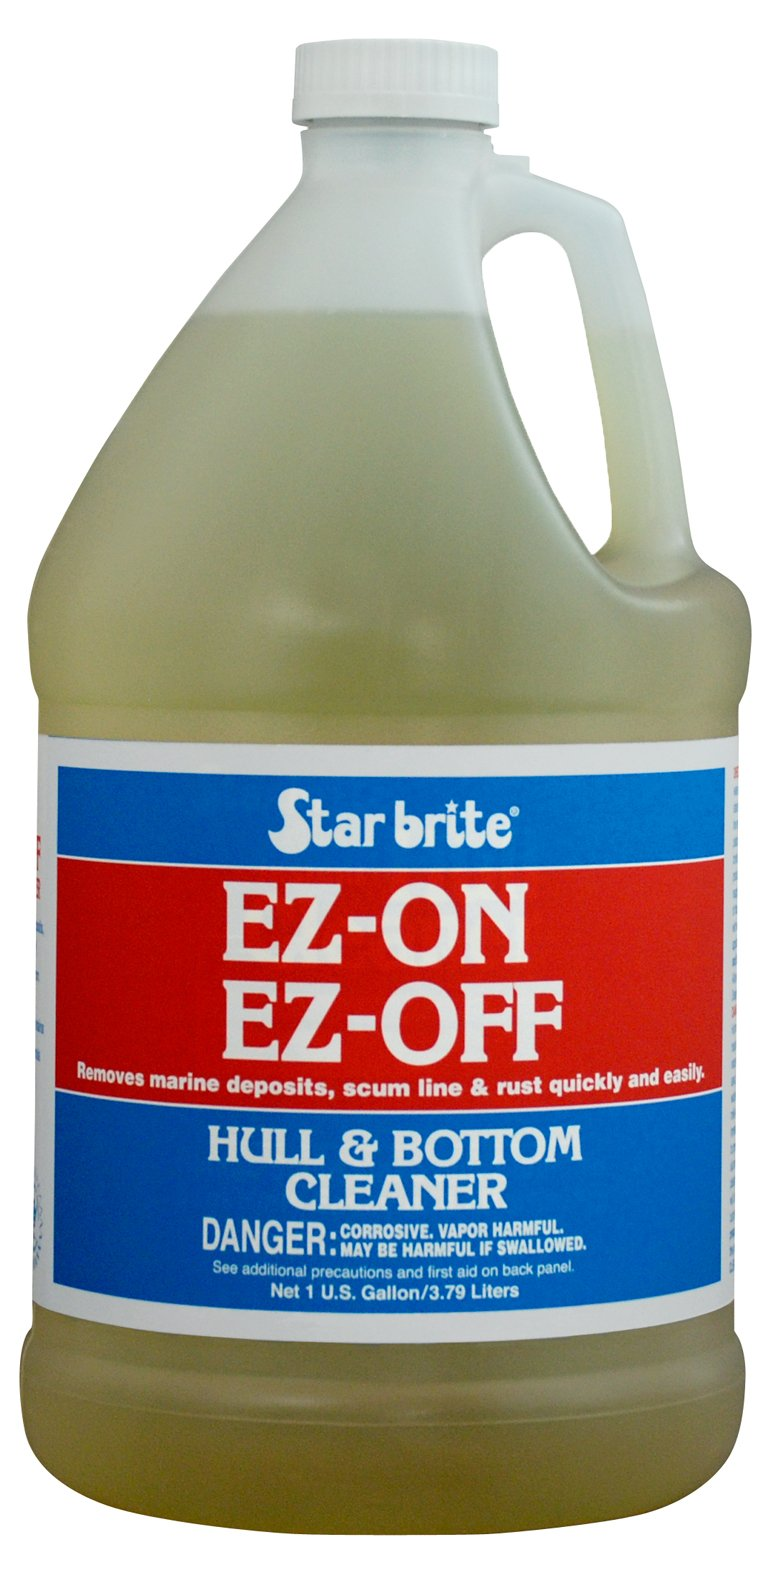 Star brite EZ-ON EZ-OFF Hull & Bottom Cleaner 1 Gallon by Star Brite